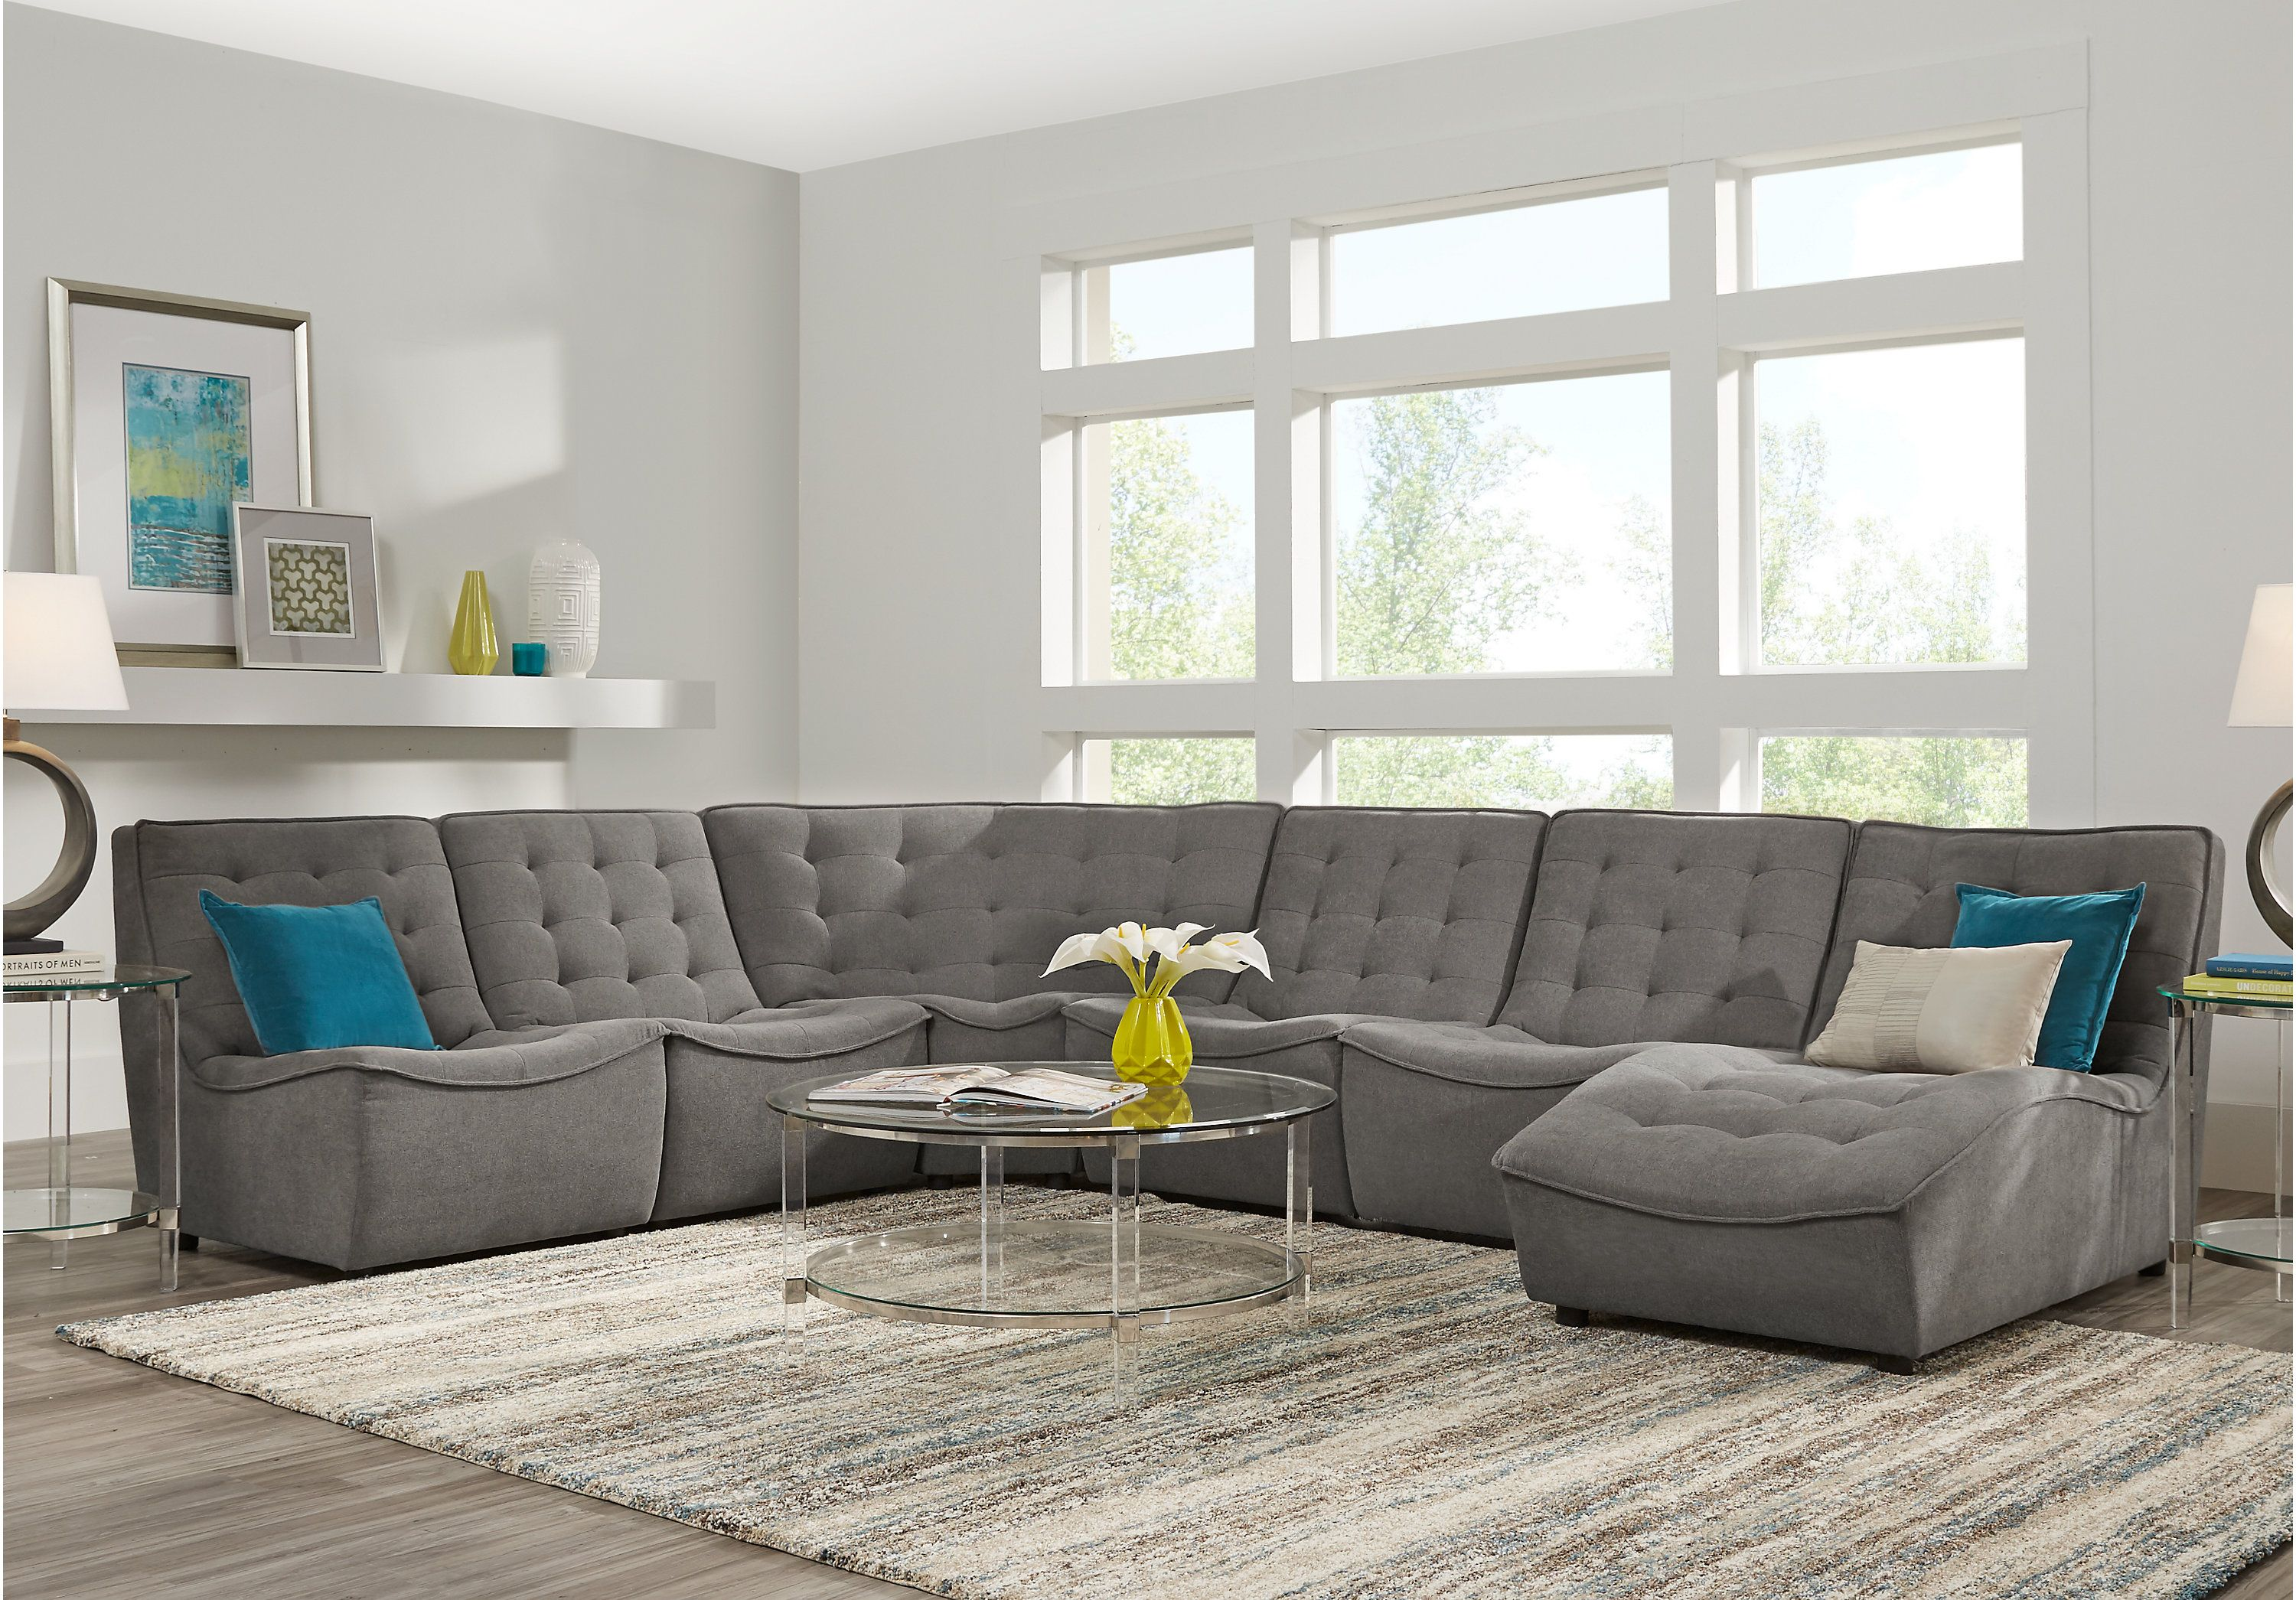 Nathan Square Gray 6 Pc Sectional Living Room Sets Gray Living Room Sectional Living Room Sets Living Room Grey